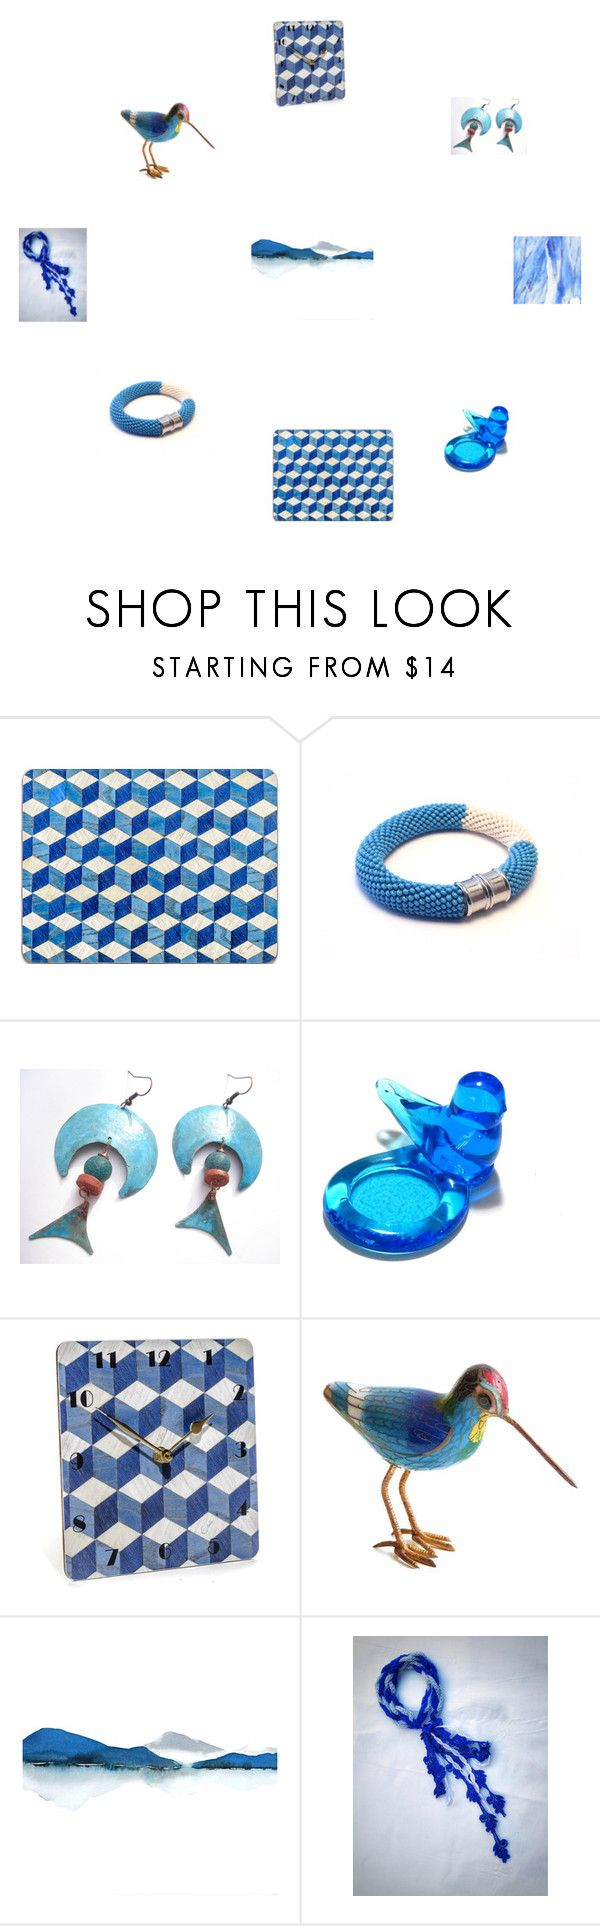 Beautiful Blues by einder on Polyvore featuring interior, interiors, interior design, home, home decor and interior decorating Geometric clock E Inder Designs